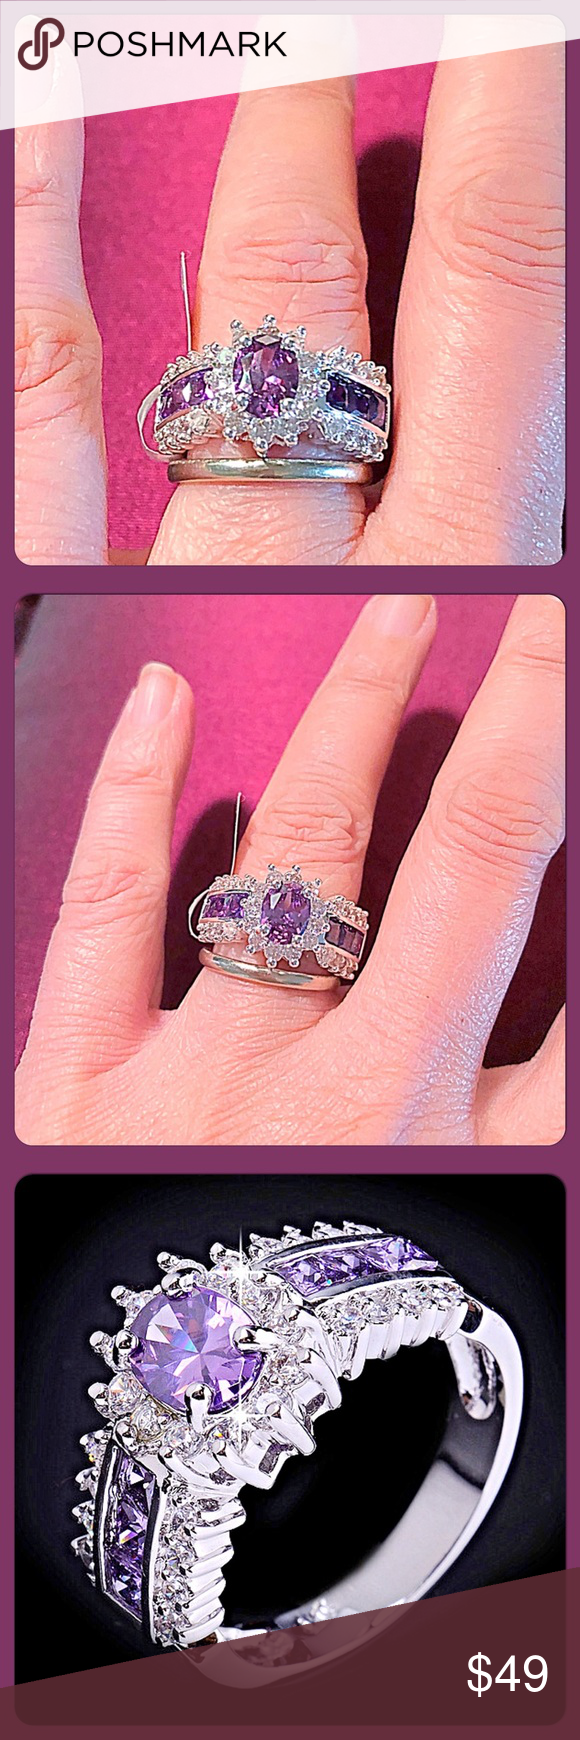 ✨ Beautiful 10kt White Gold Filled Amethyst Ring✨ | Ring finger ...